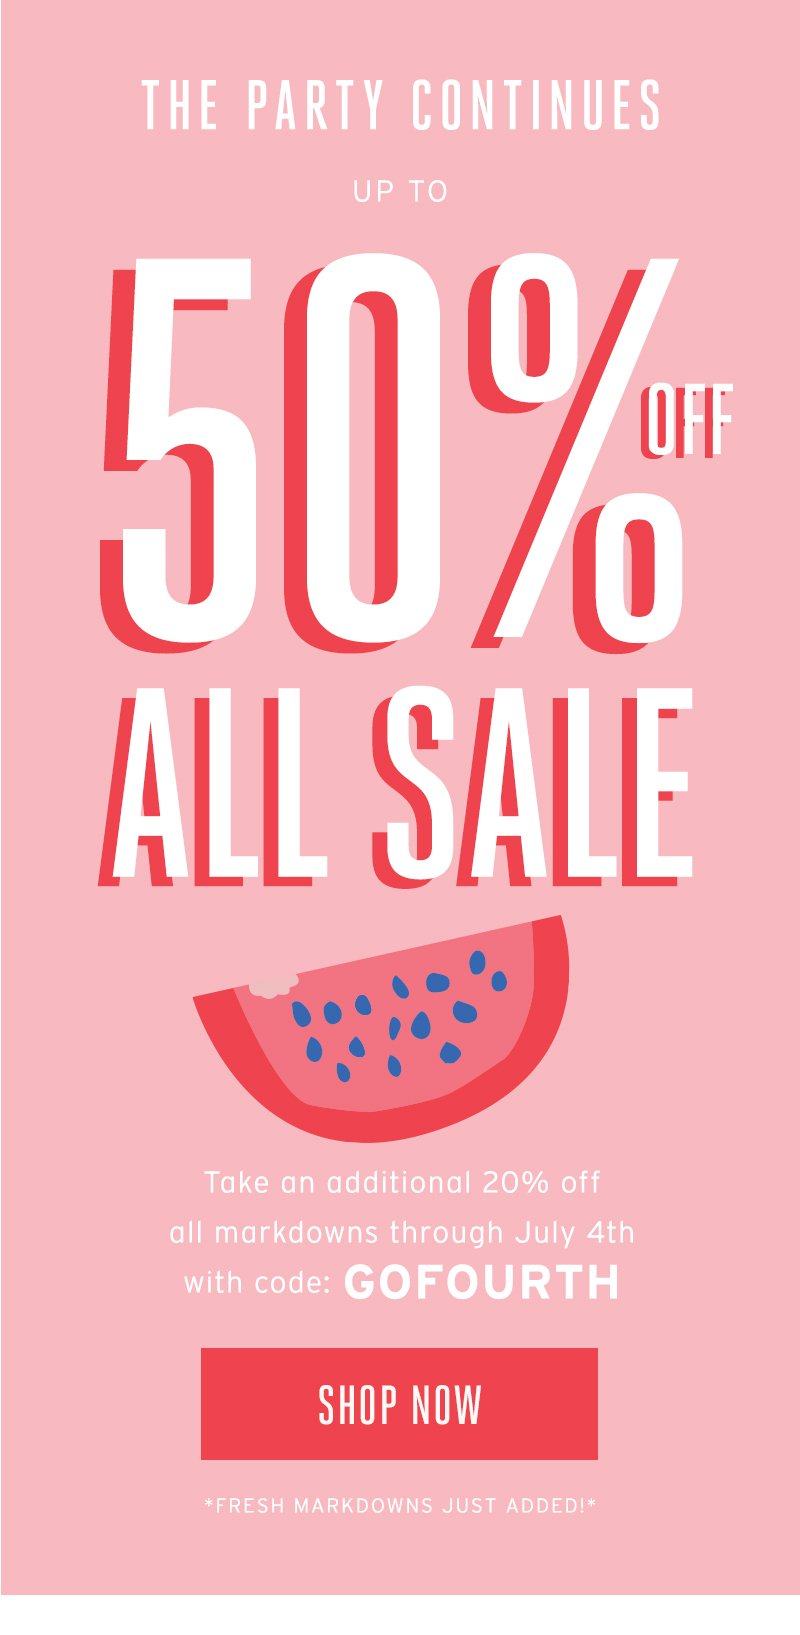 The party continues up 50% off all sale with GOFOURTH. Shop now.